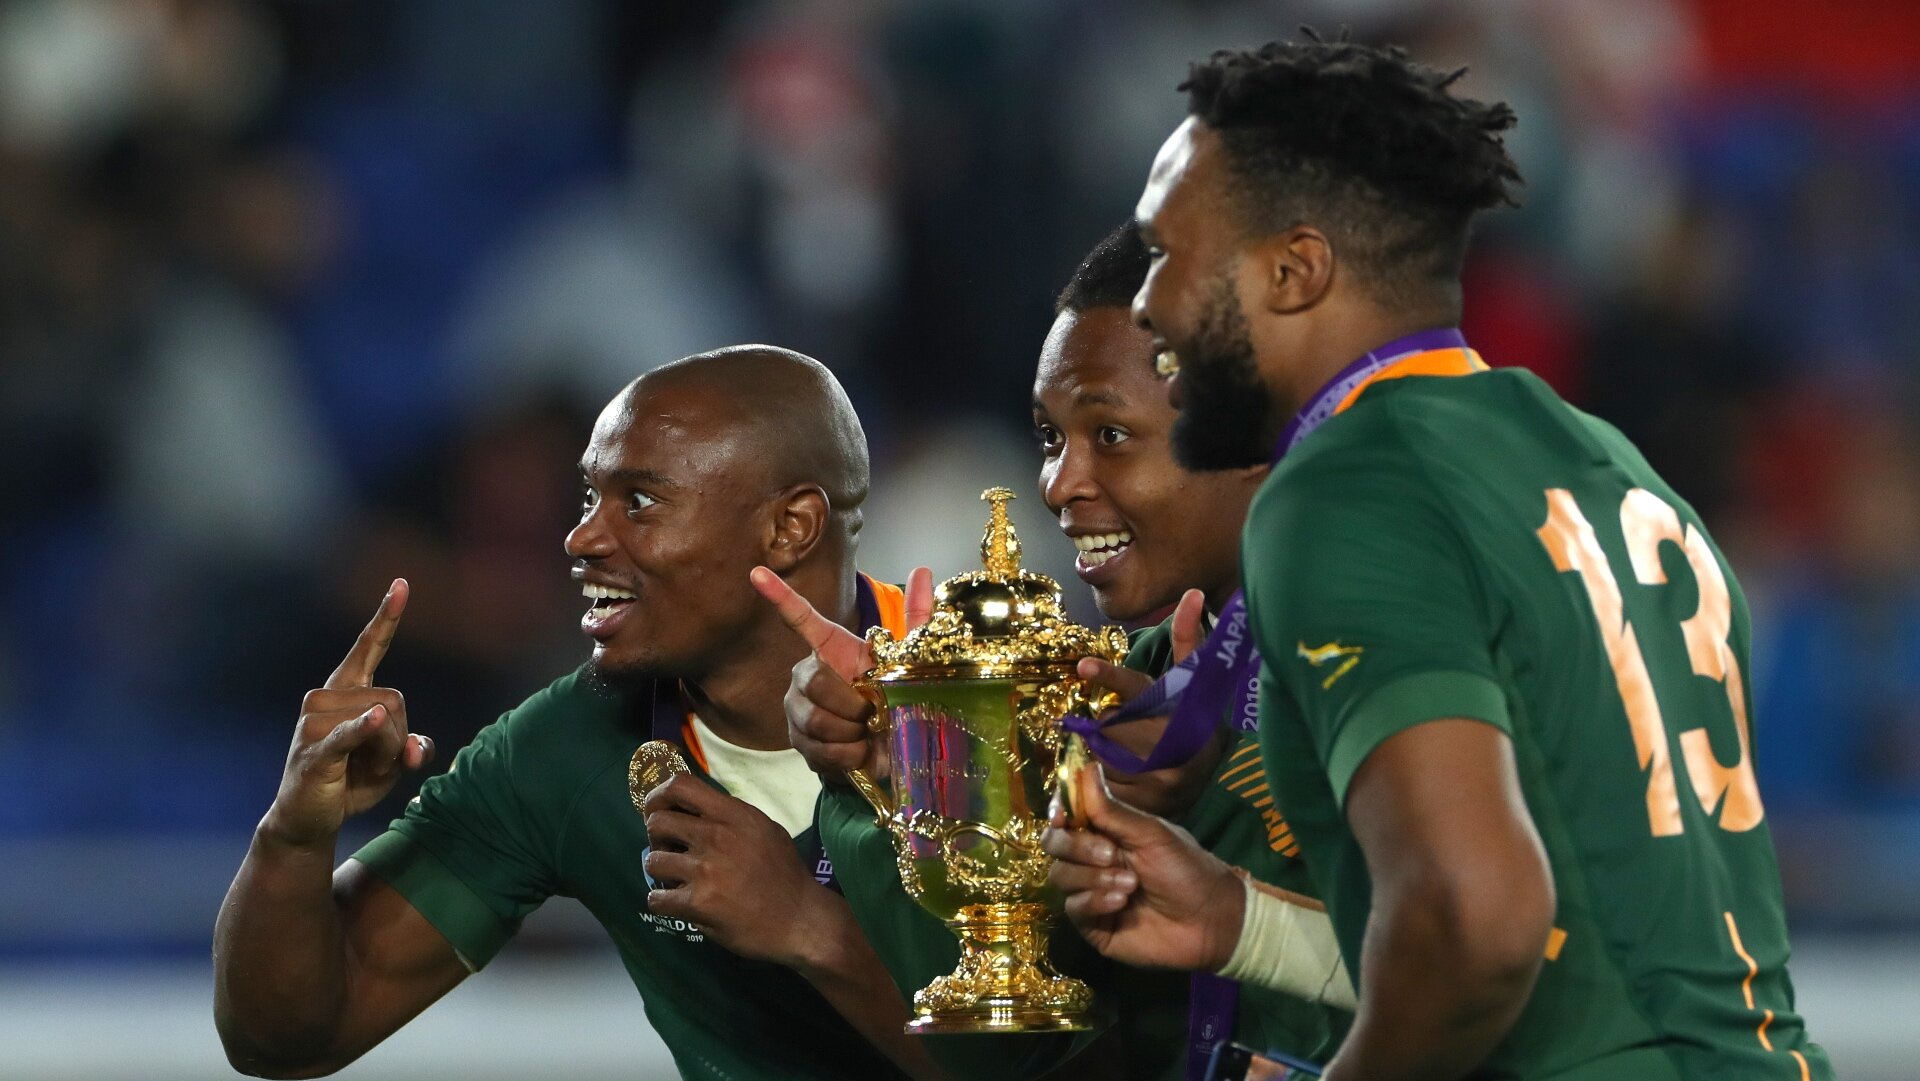 Cup-winning Boks busy saluting front line healthcare workers